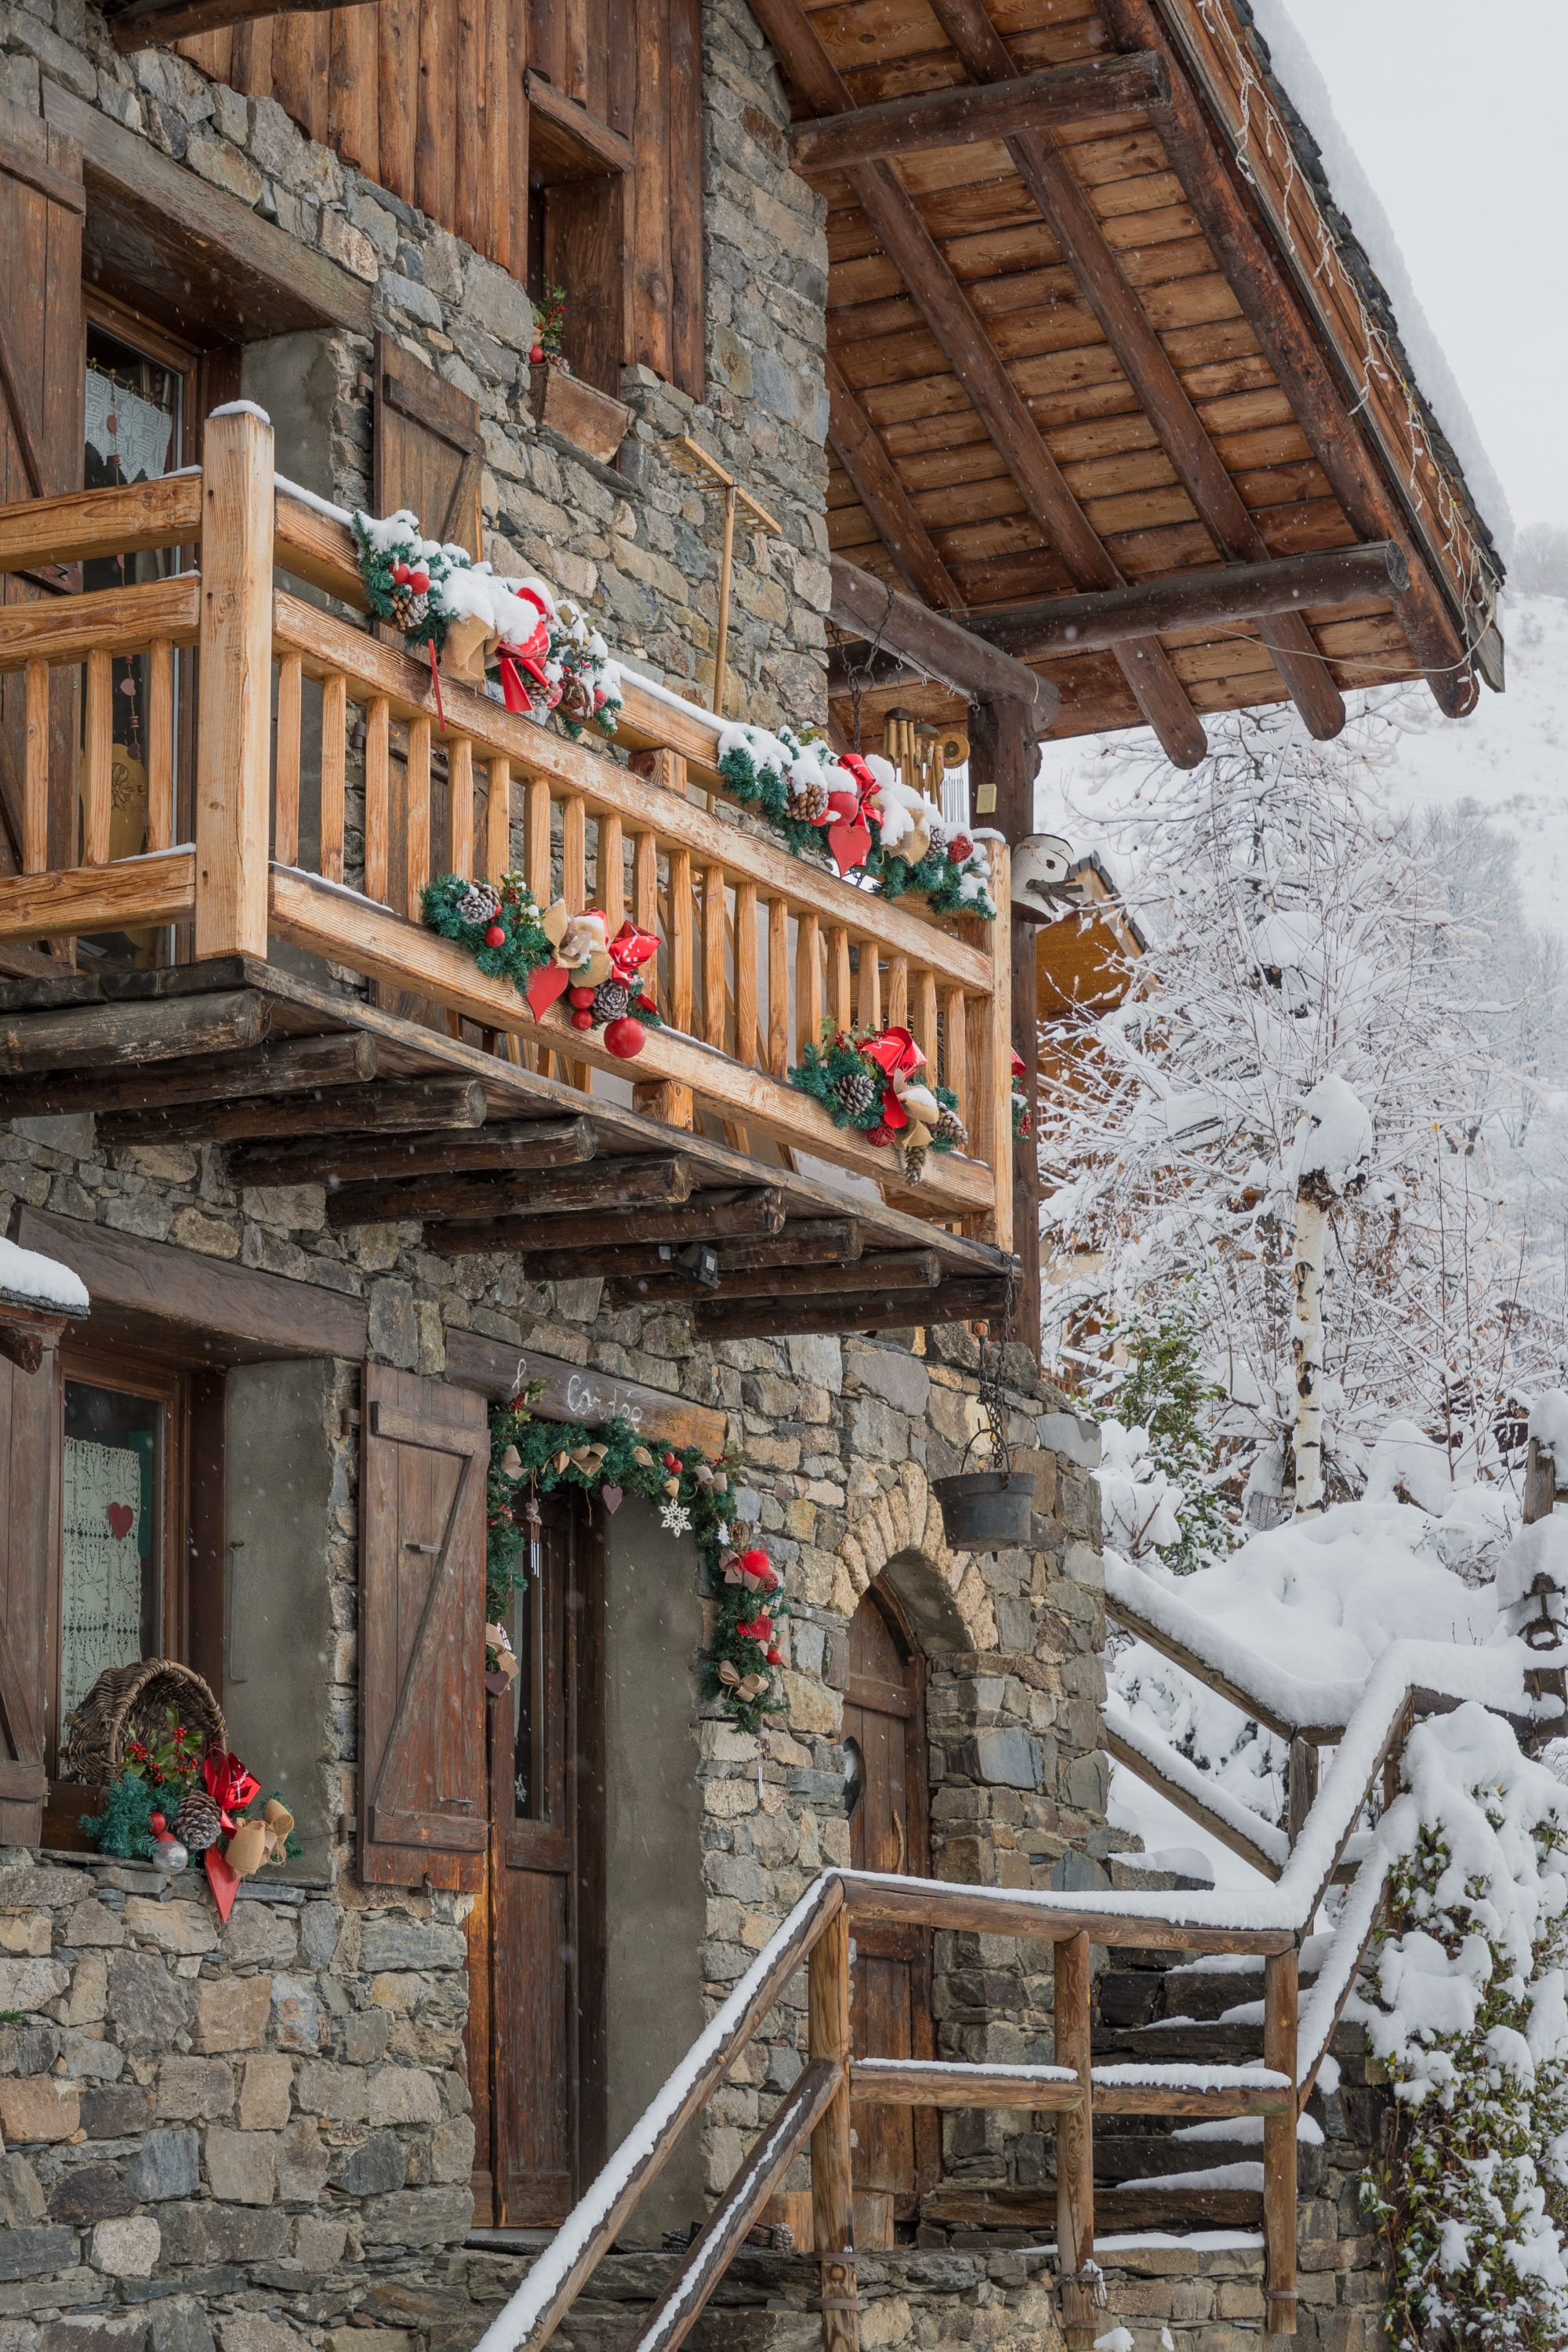 Getting Your Home Ready For Holiday Visitors